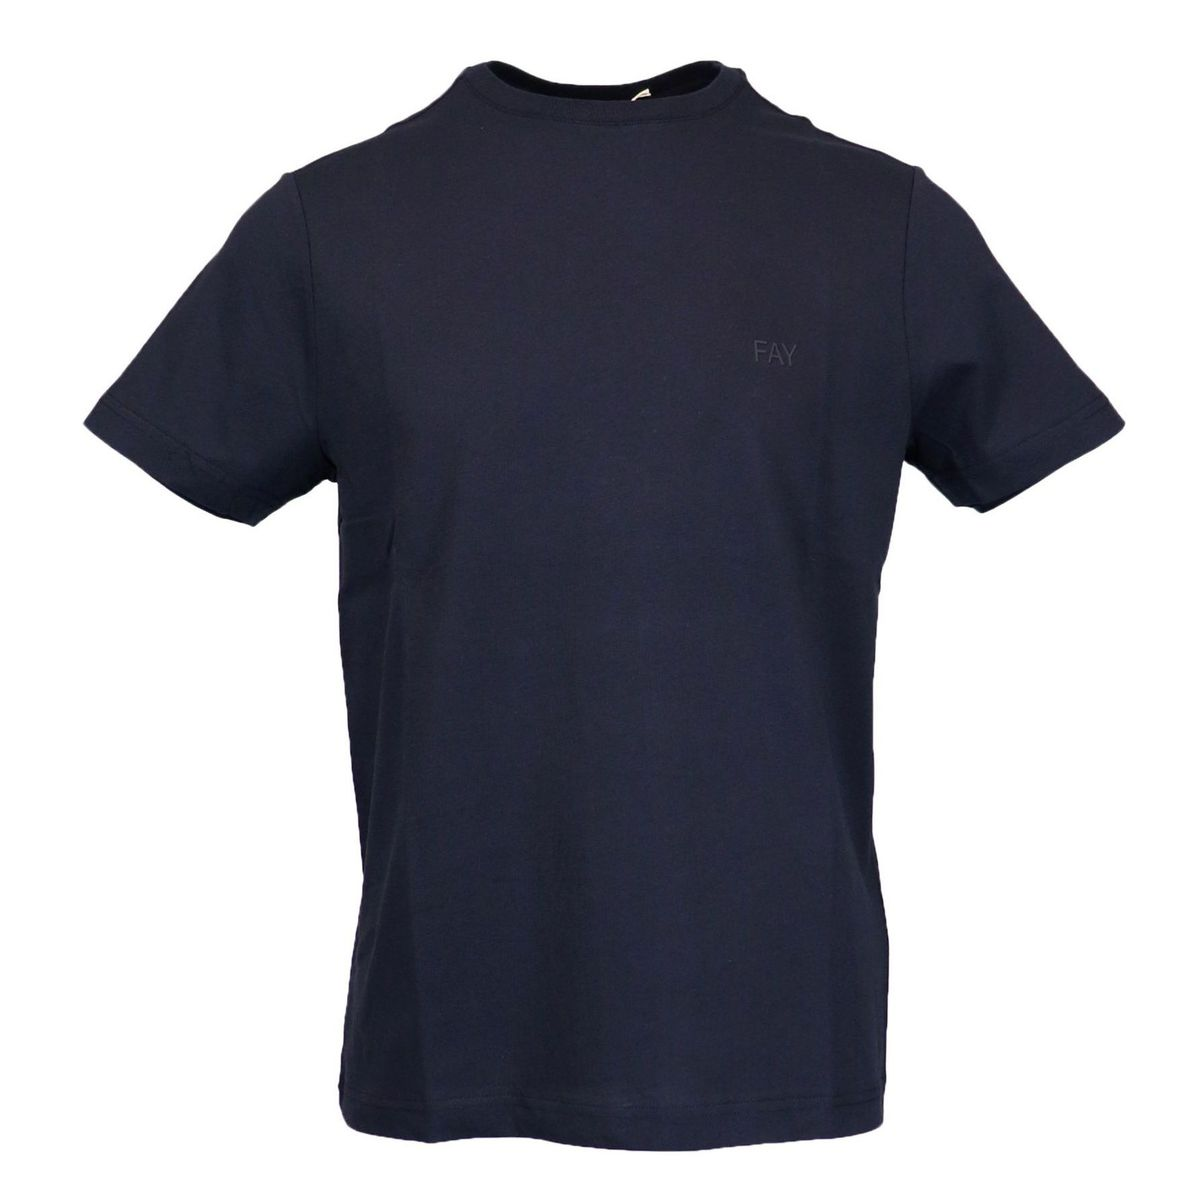 Cotton T-shirt with rubber logo Navy Fay